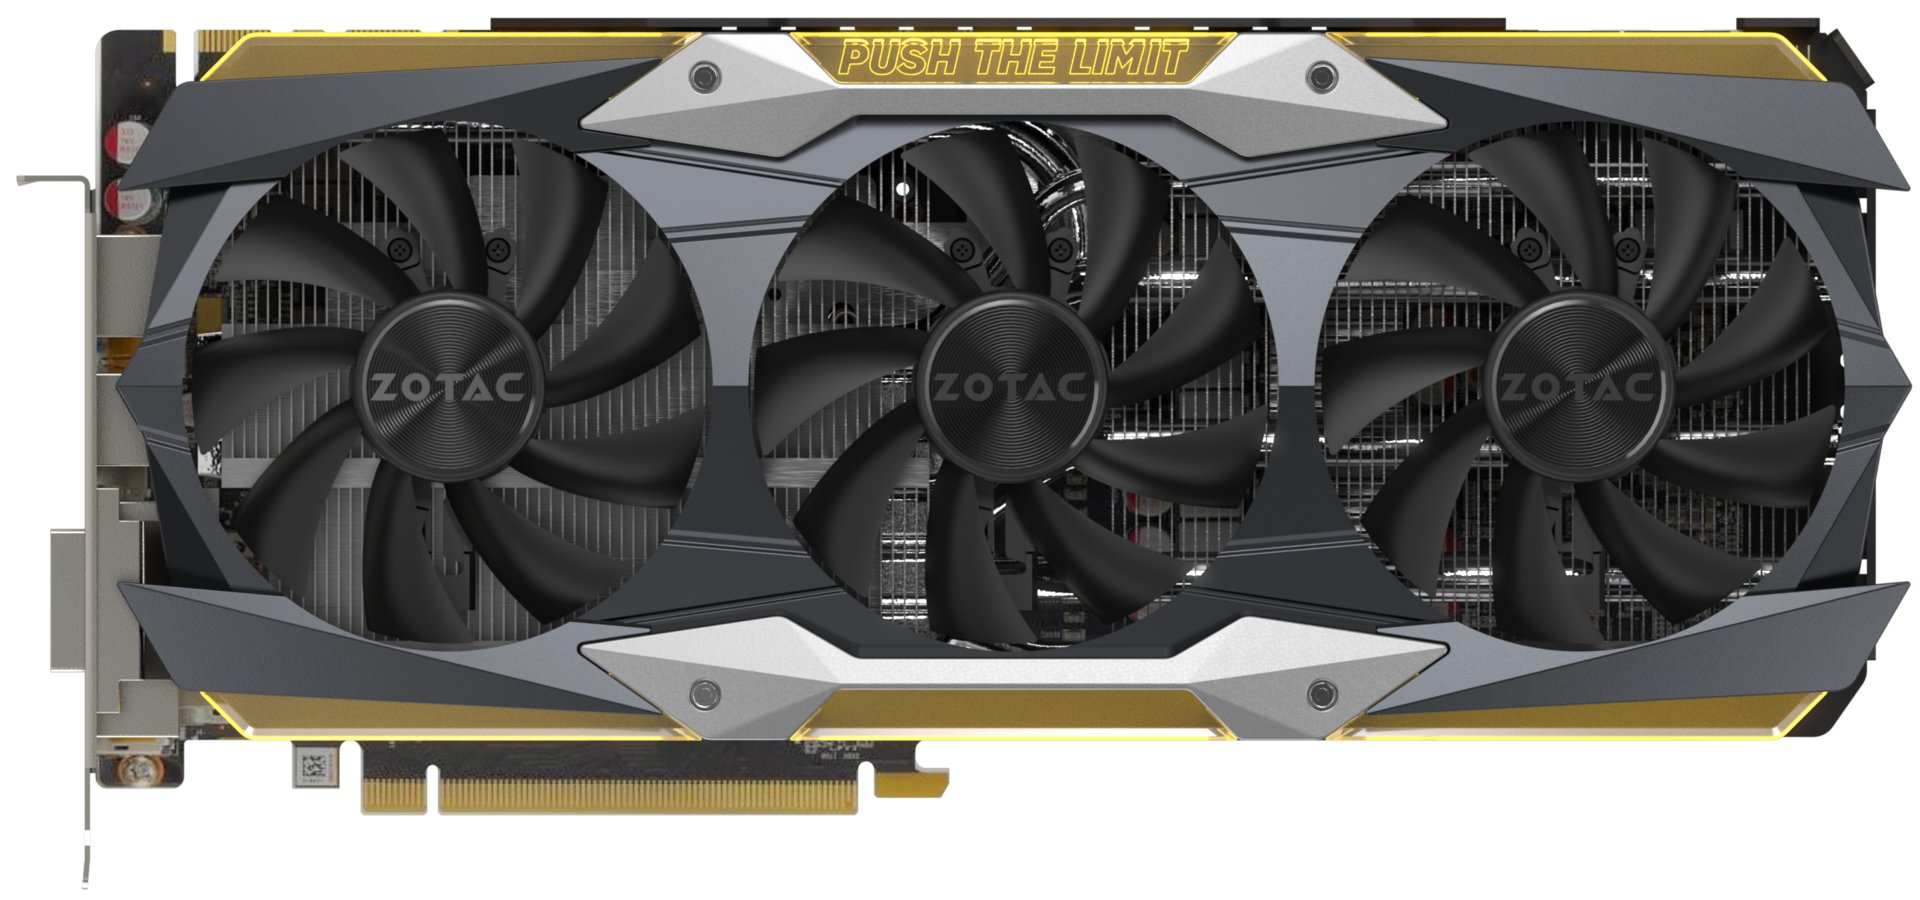 Zotac GeForce GTX 1080 Ti AMP! Extreme Edition